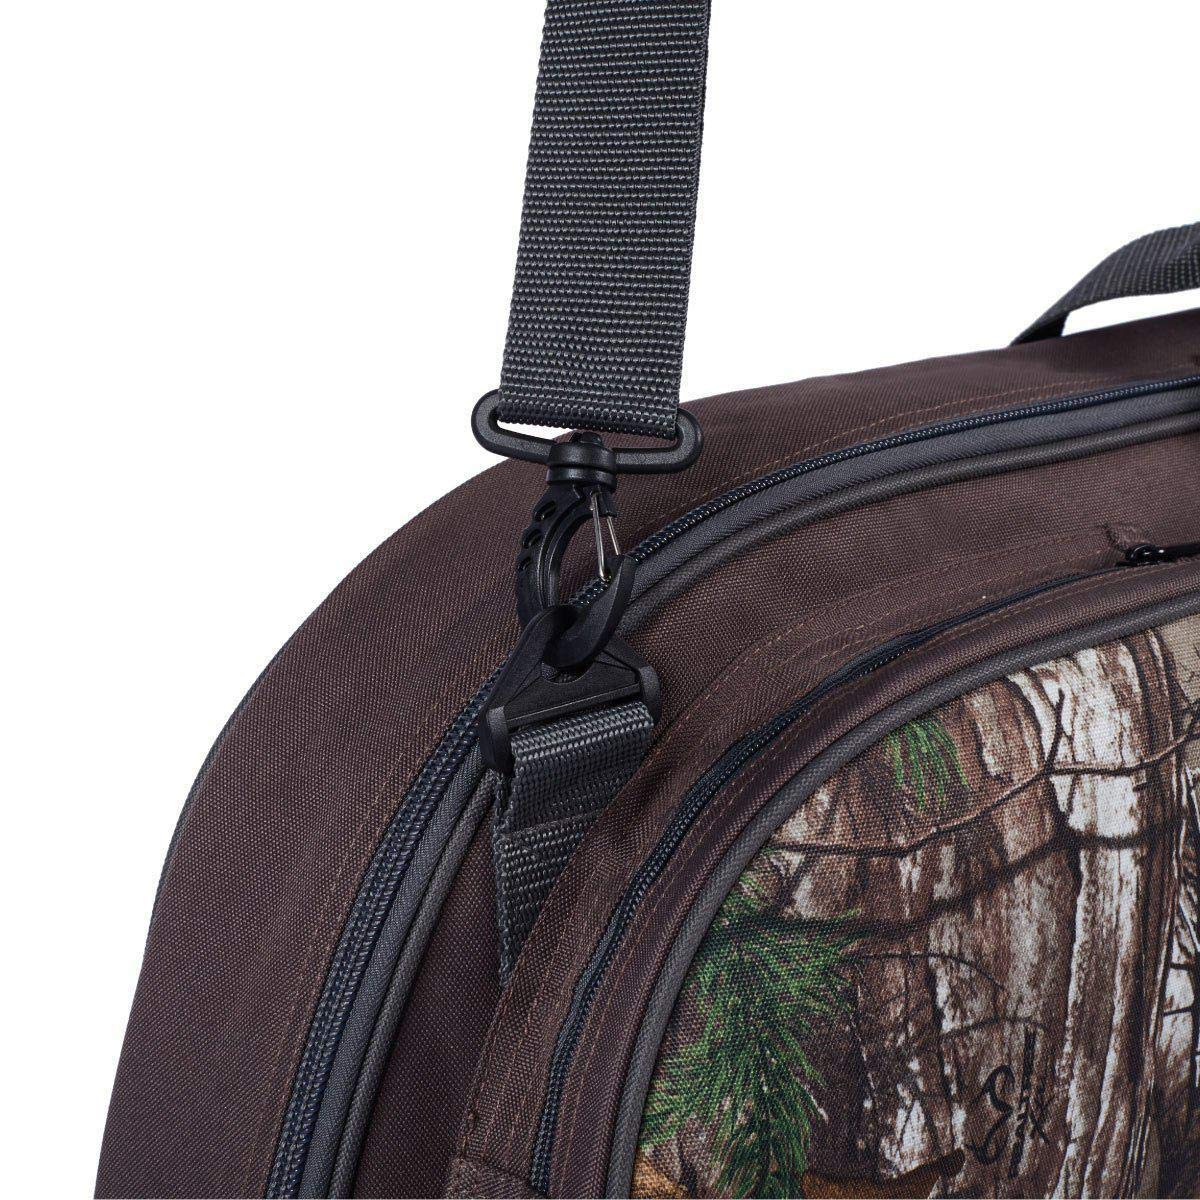 Bow Secured with Fastening Straps Mesh Pockets Inside Length 35.4 Legend Archery Crusader Compound Bow Case Backpack